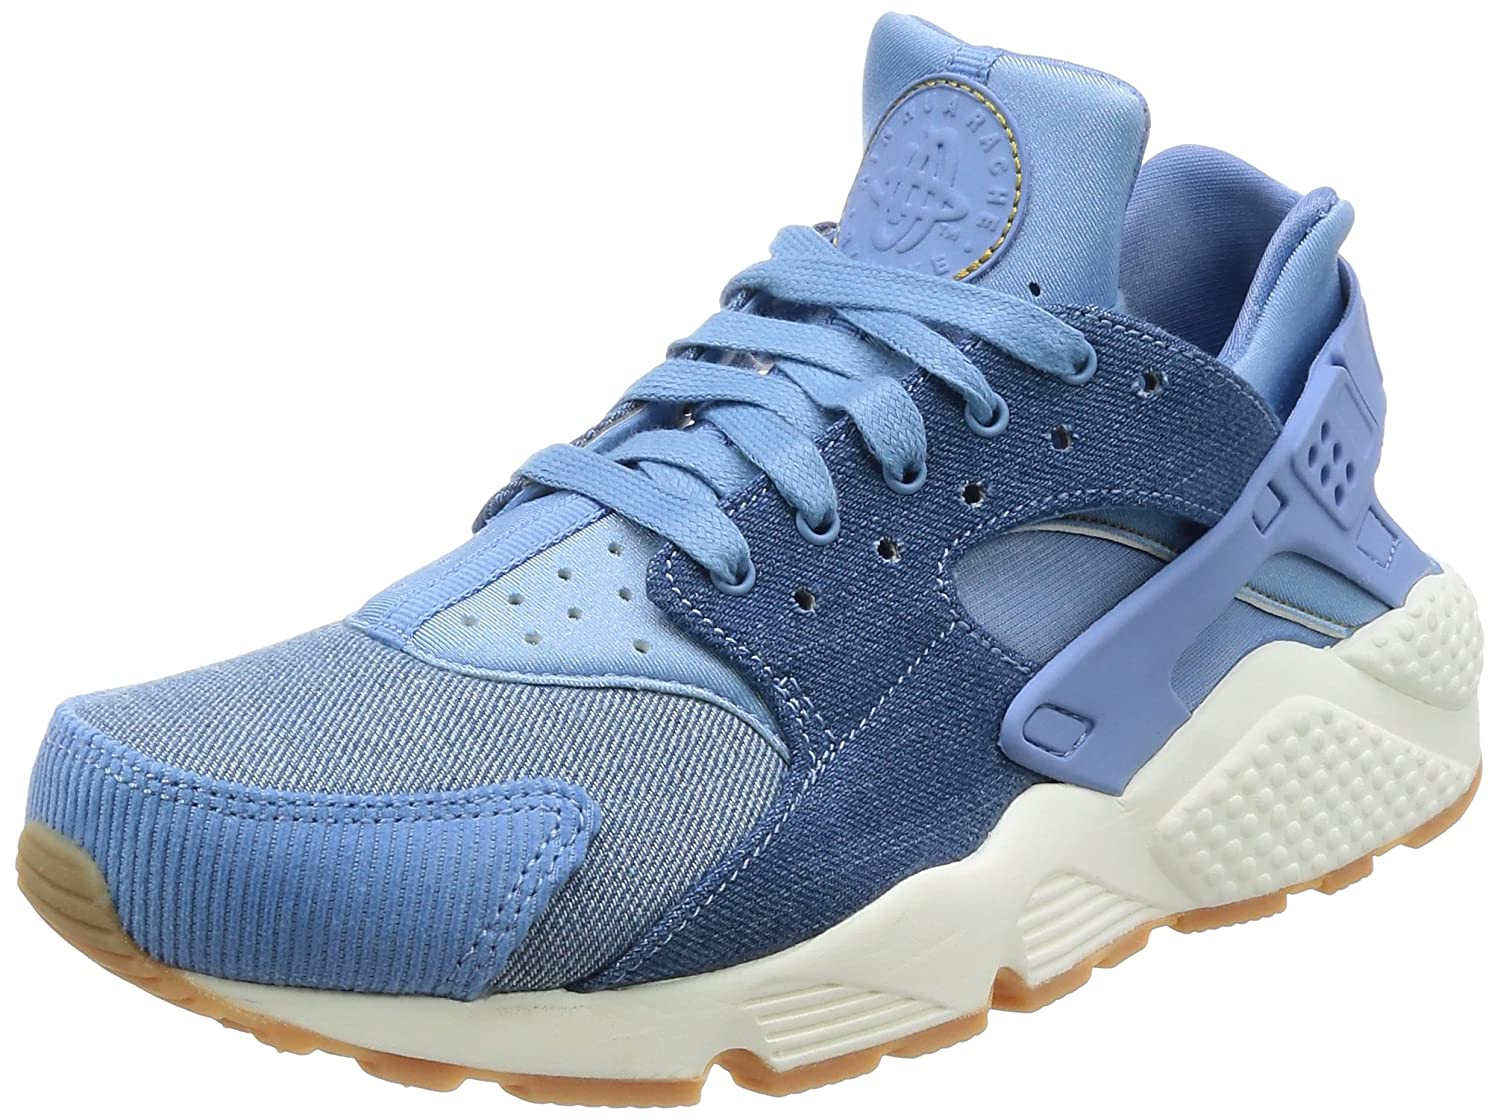 Damen Damen Damen Air Huarache Run SE December Sky/Gold Dart Sail Running Schuhe 4c3d00